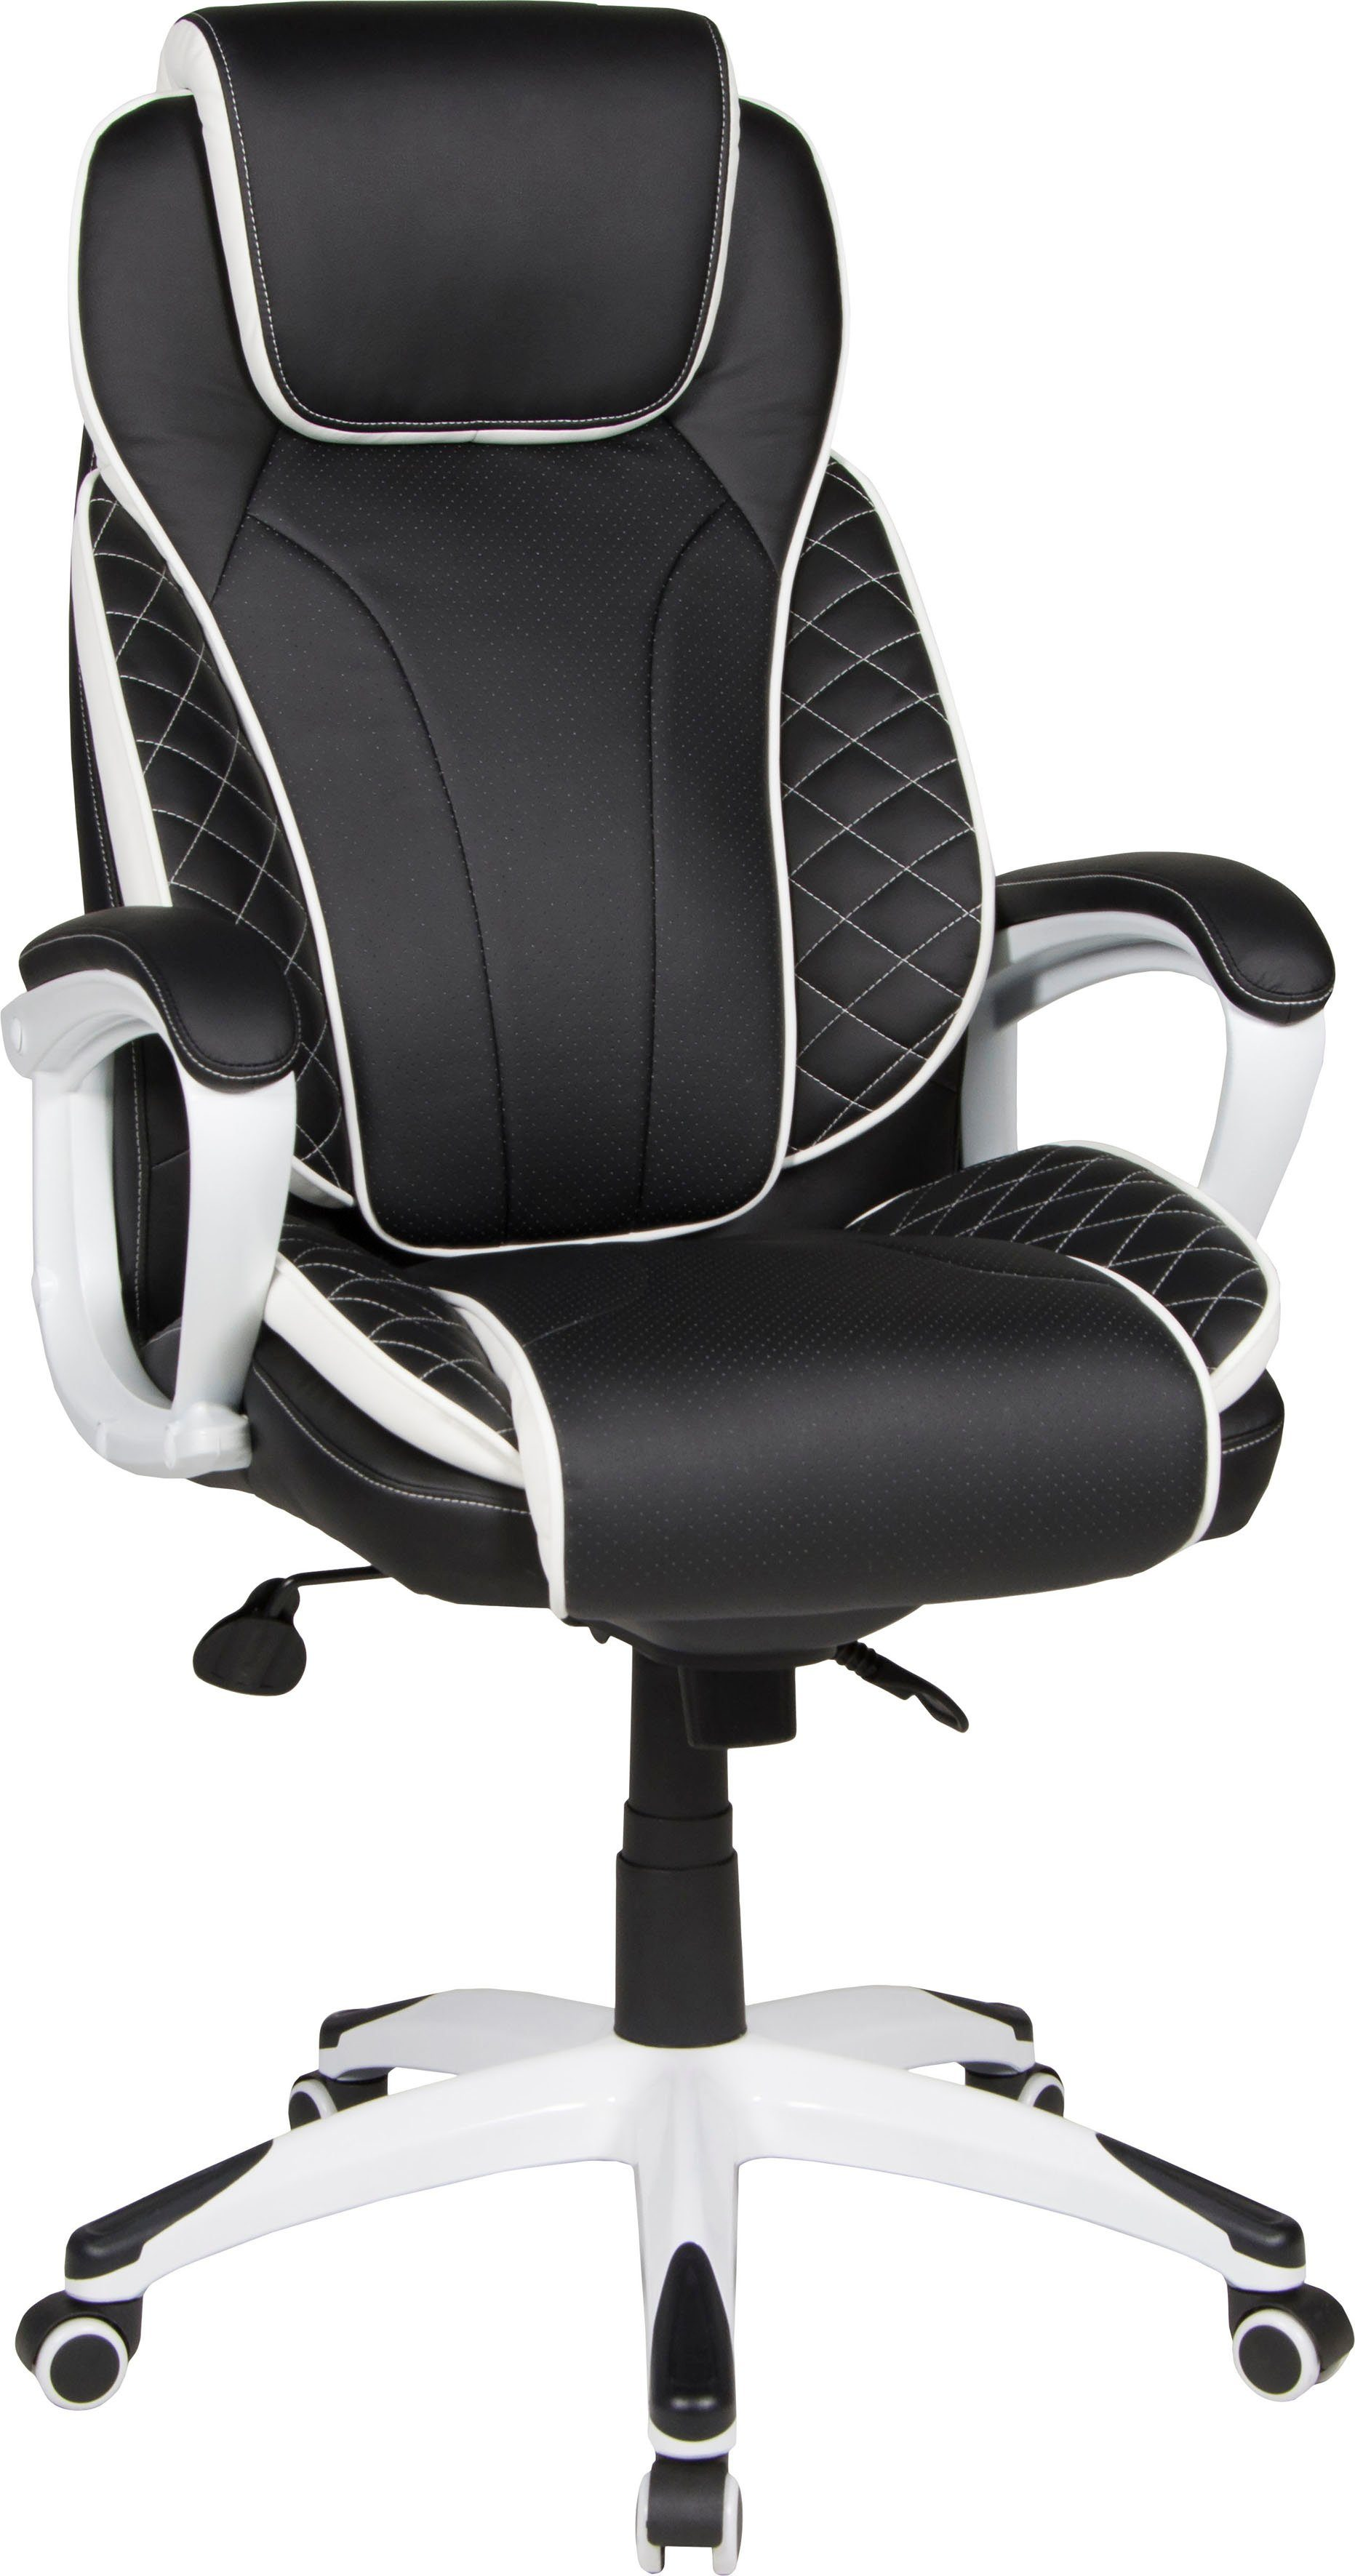 Duo Collection Chefsessel »Justus«, schwarz